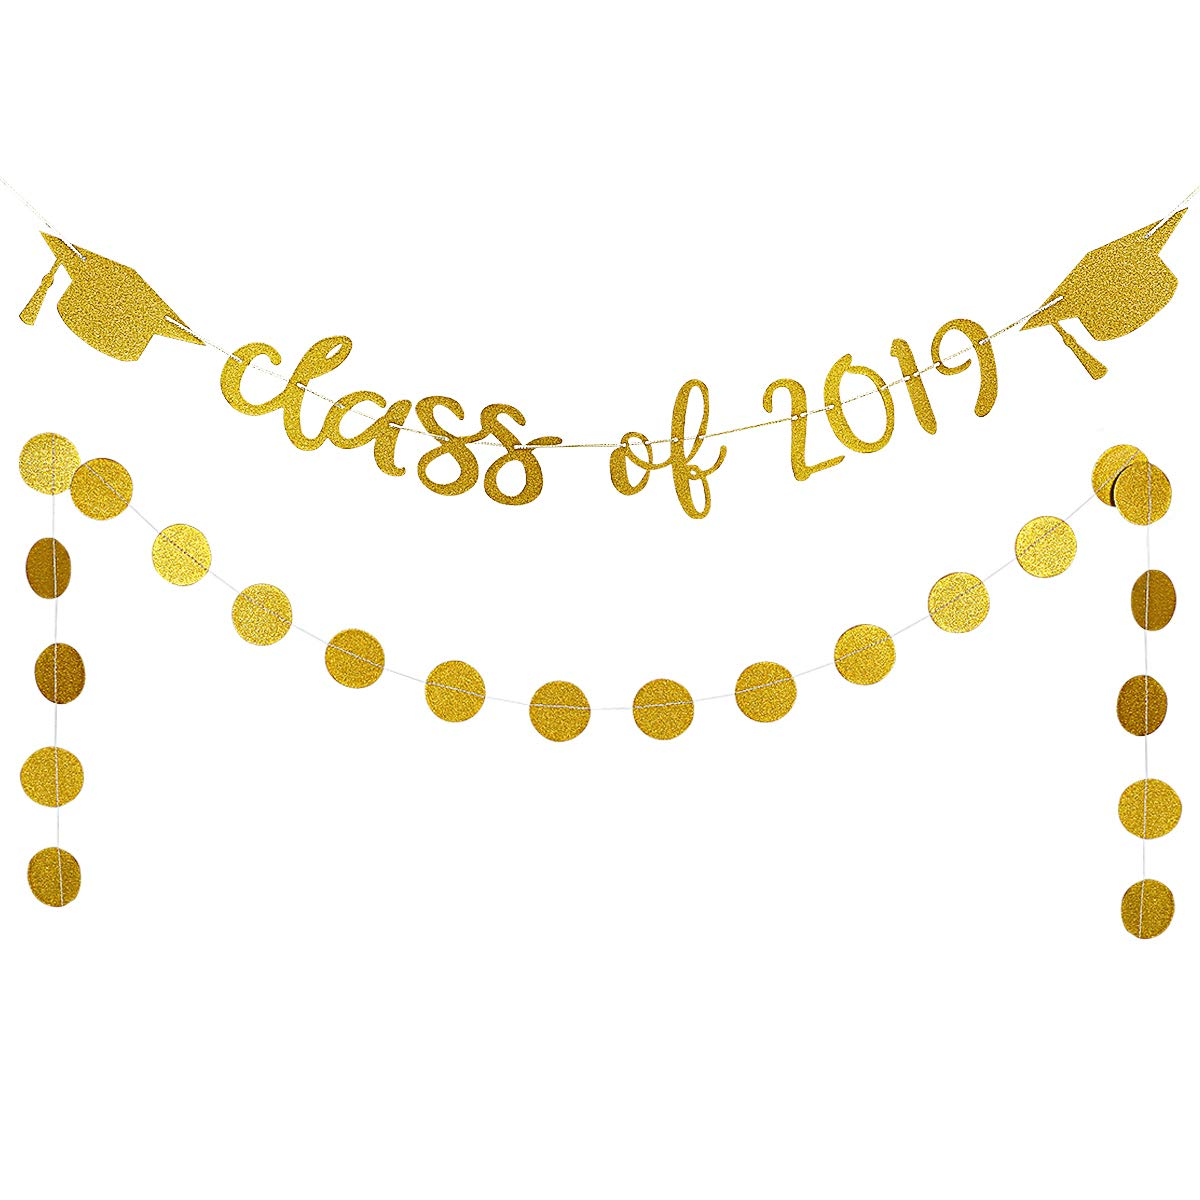 2019 banner clipart image black and white 2019 Graduation Party Decorations,Gold Glittery Class of 2019 Banners and  Gold Glittery Circle Dots Garland- Graduation/Grad Party Decorations image black and white